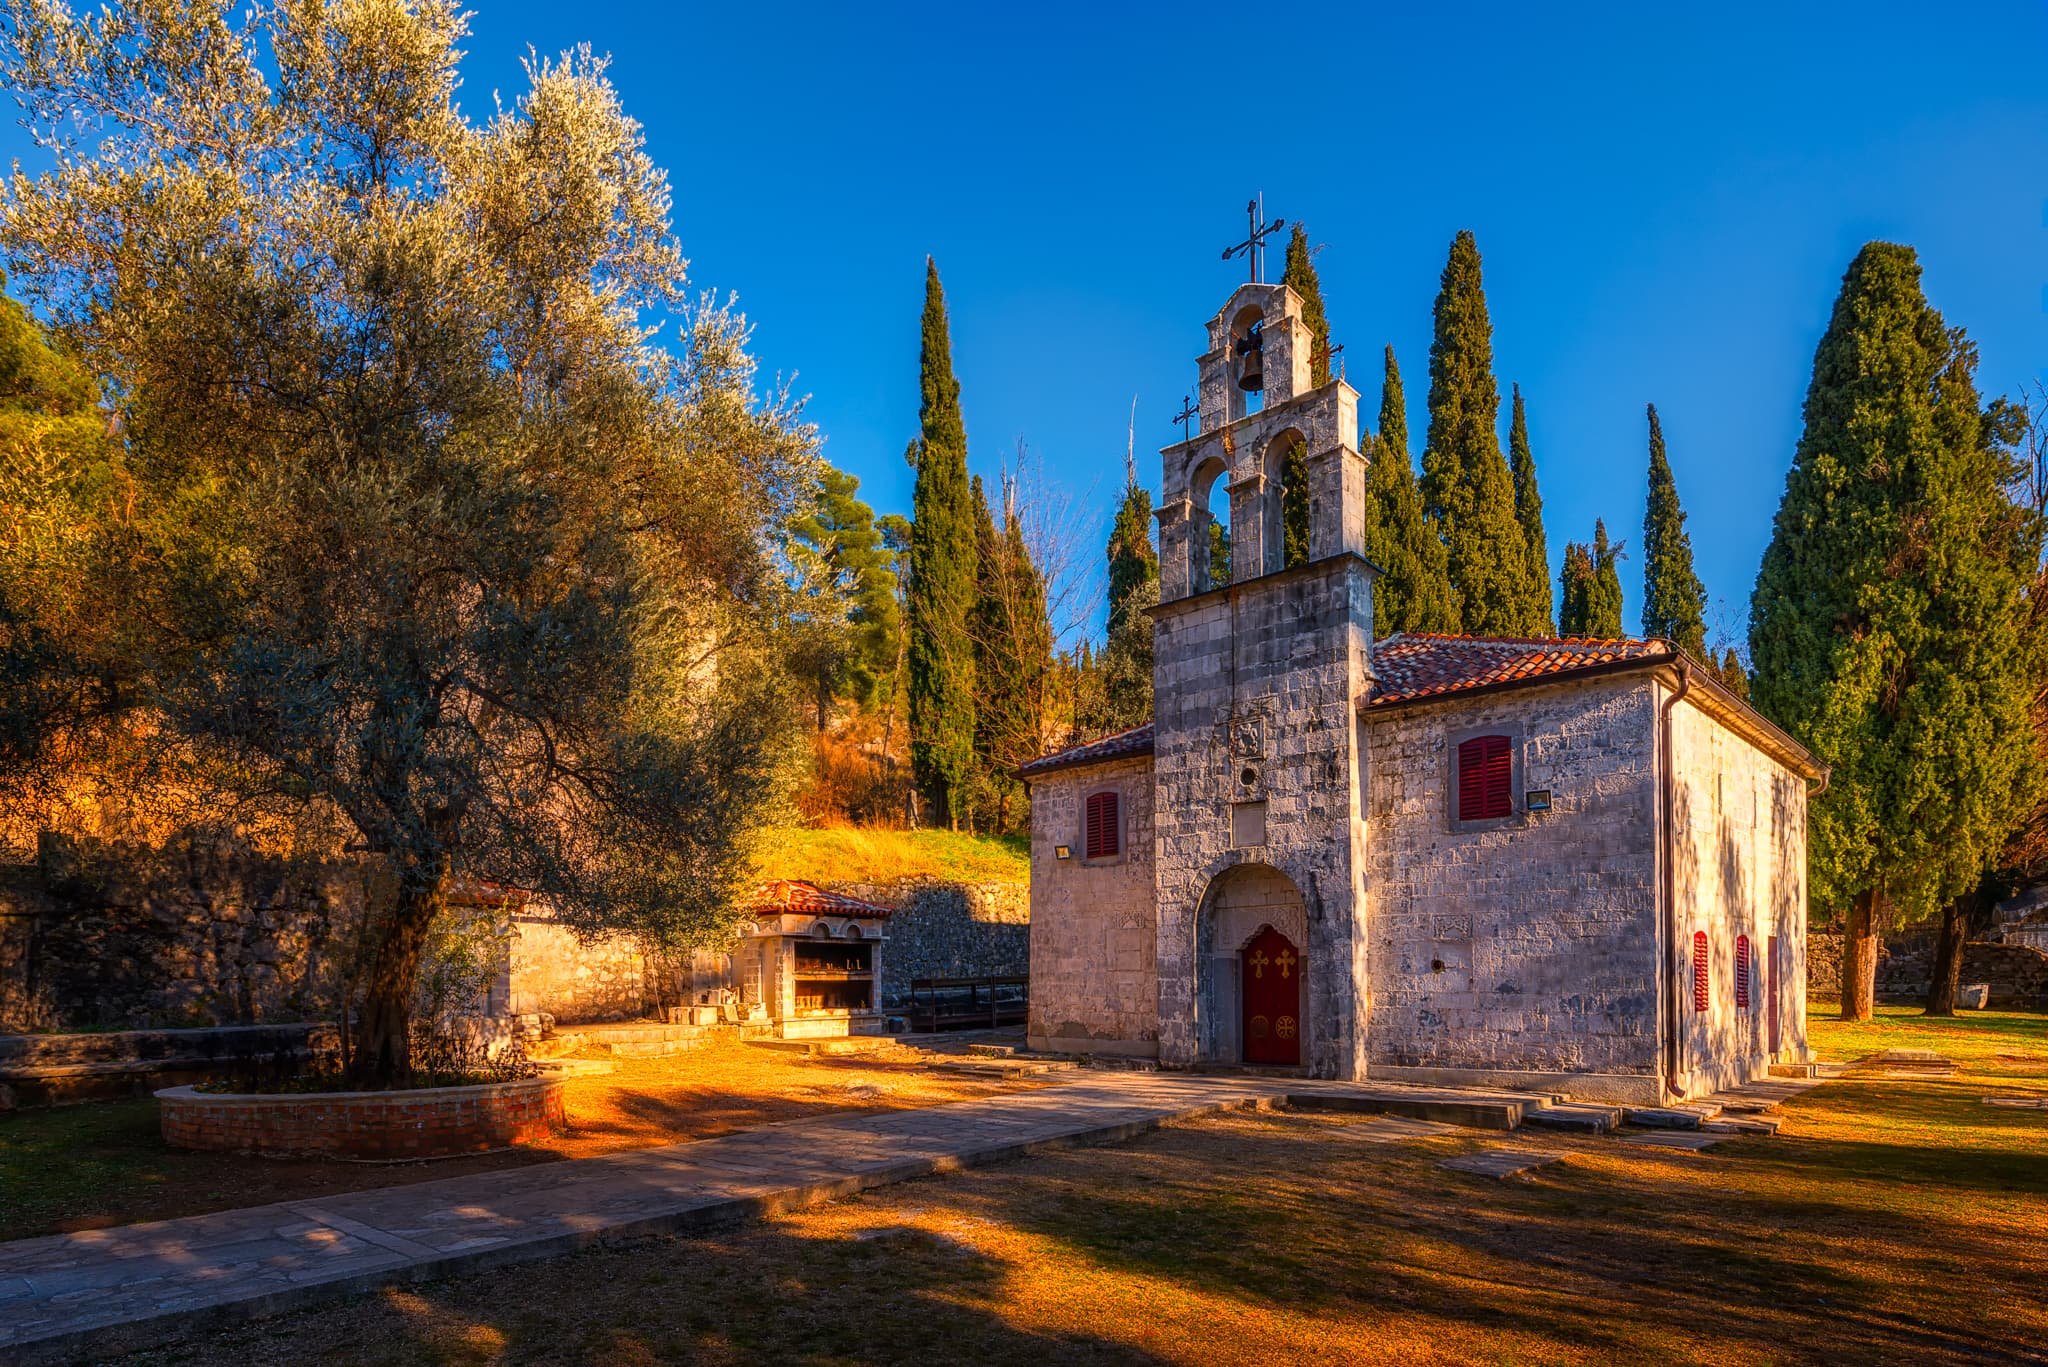 Church of St. George | Podgorica, Montenegro